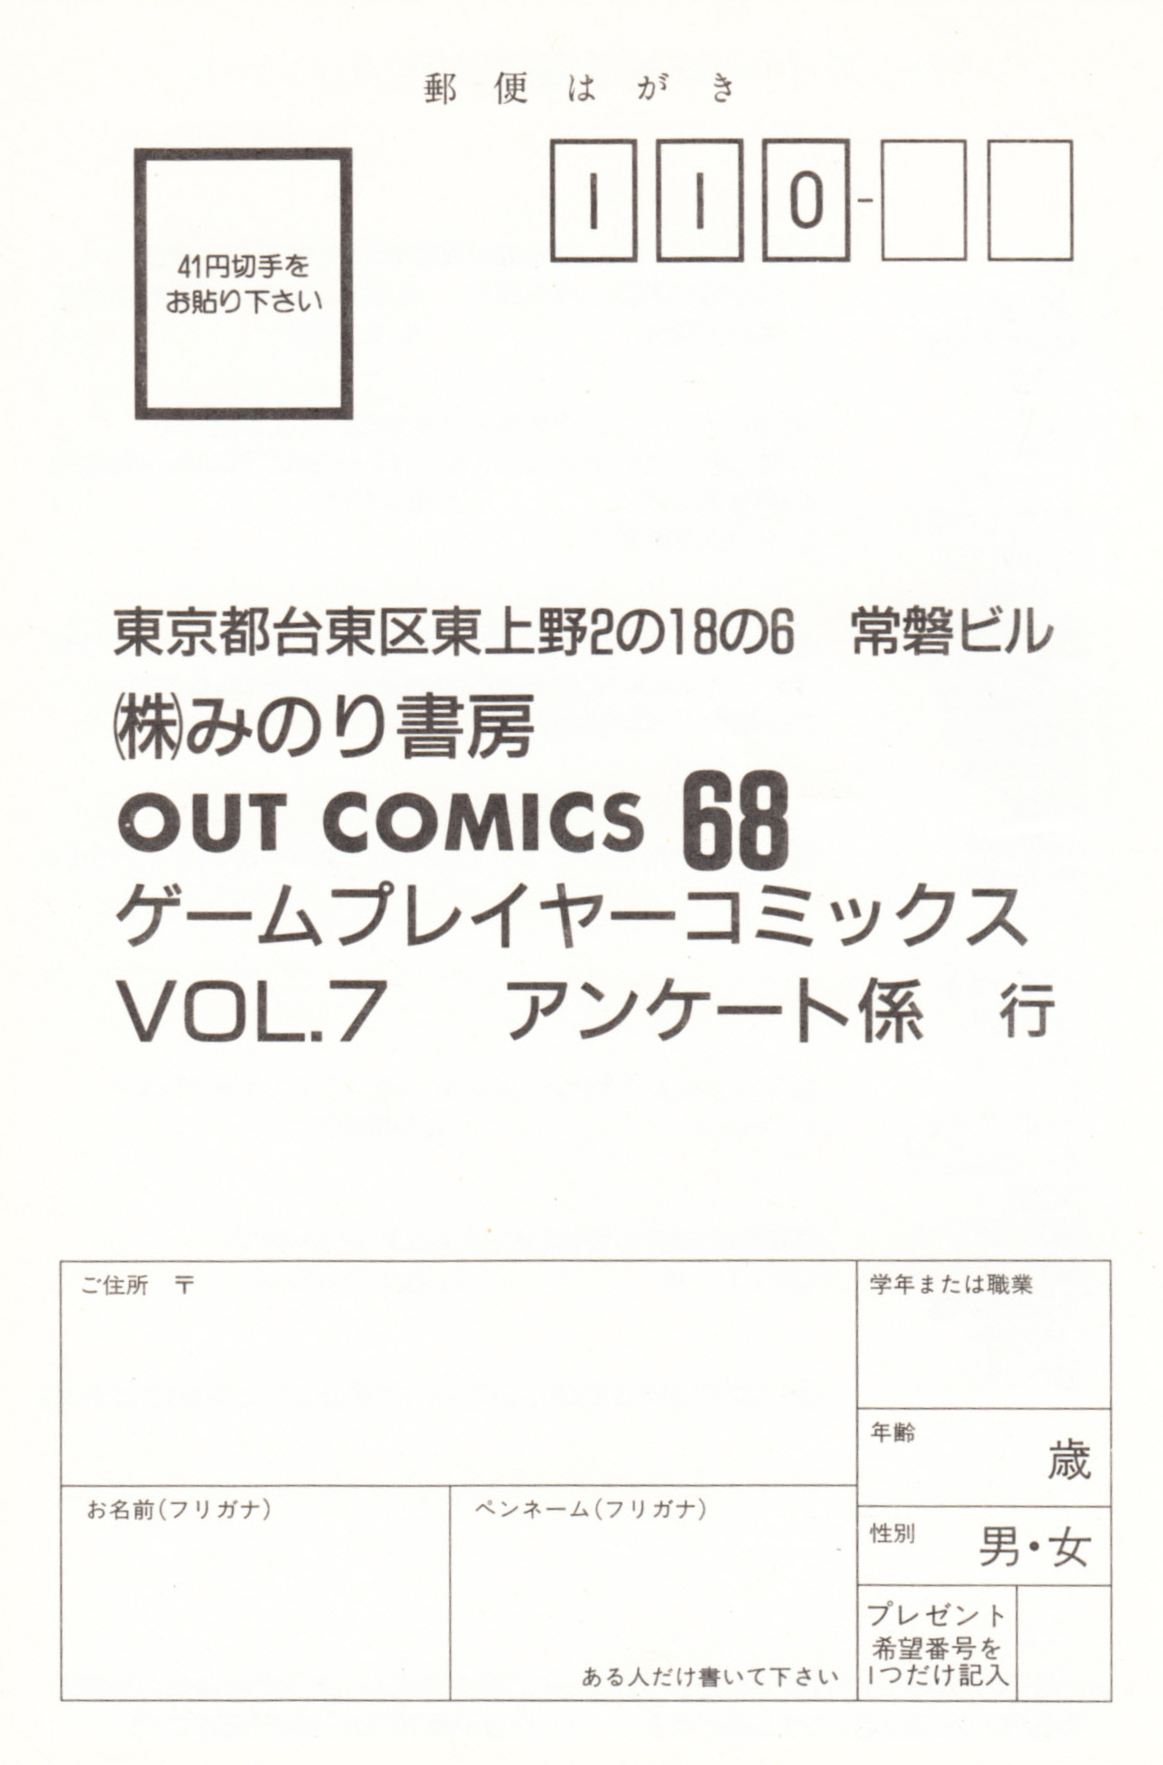 Comic - Game Player Comics Volume 7 - JP - Registration Card - Front - Scan